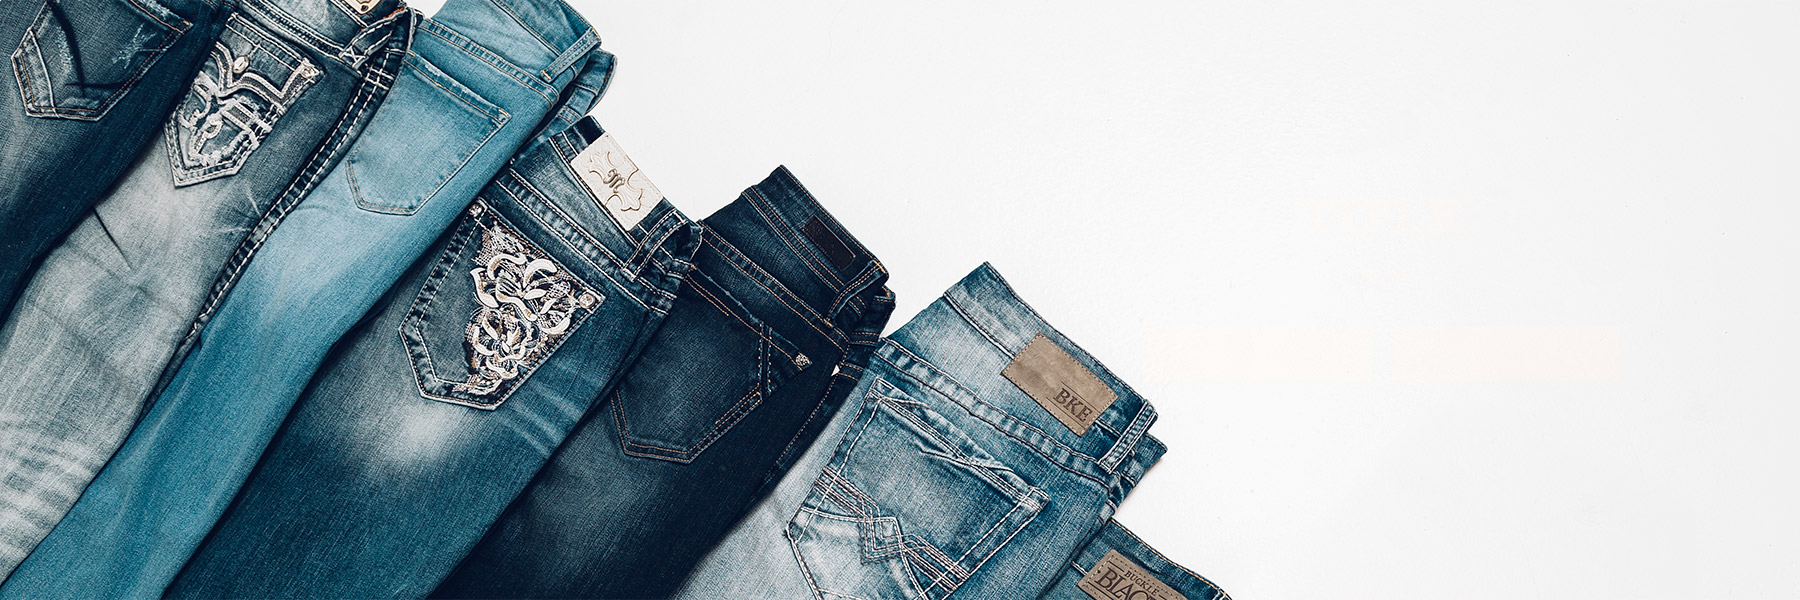 Assorted new styles of jeans from Buckle, folded to show back pocket details, laying on white background.